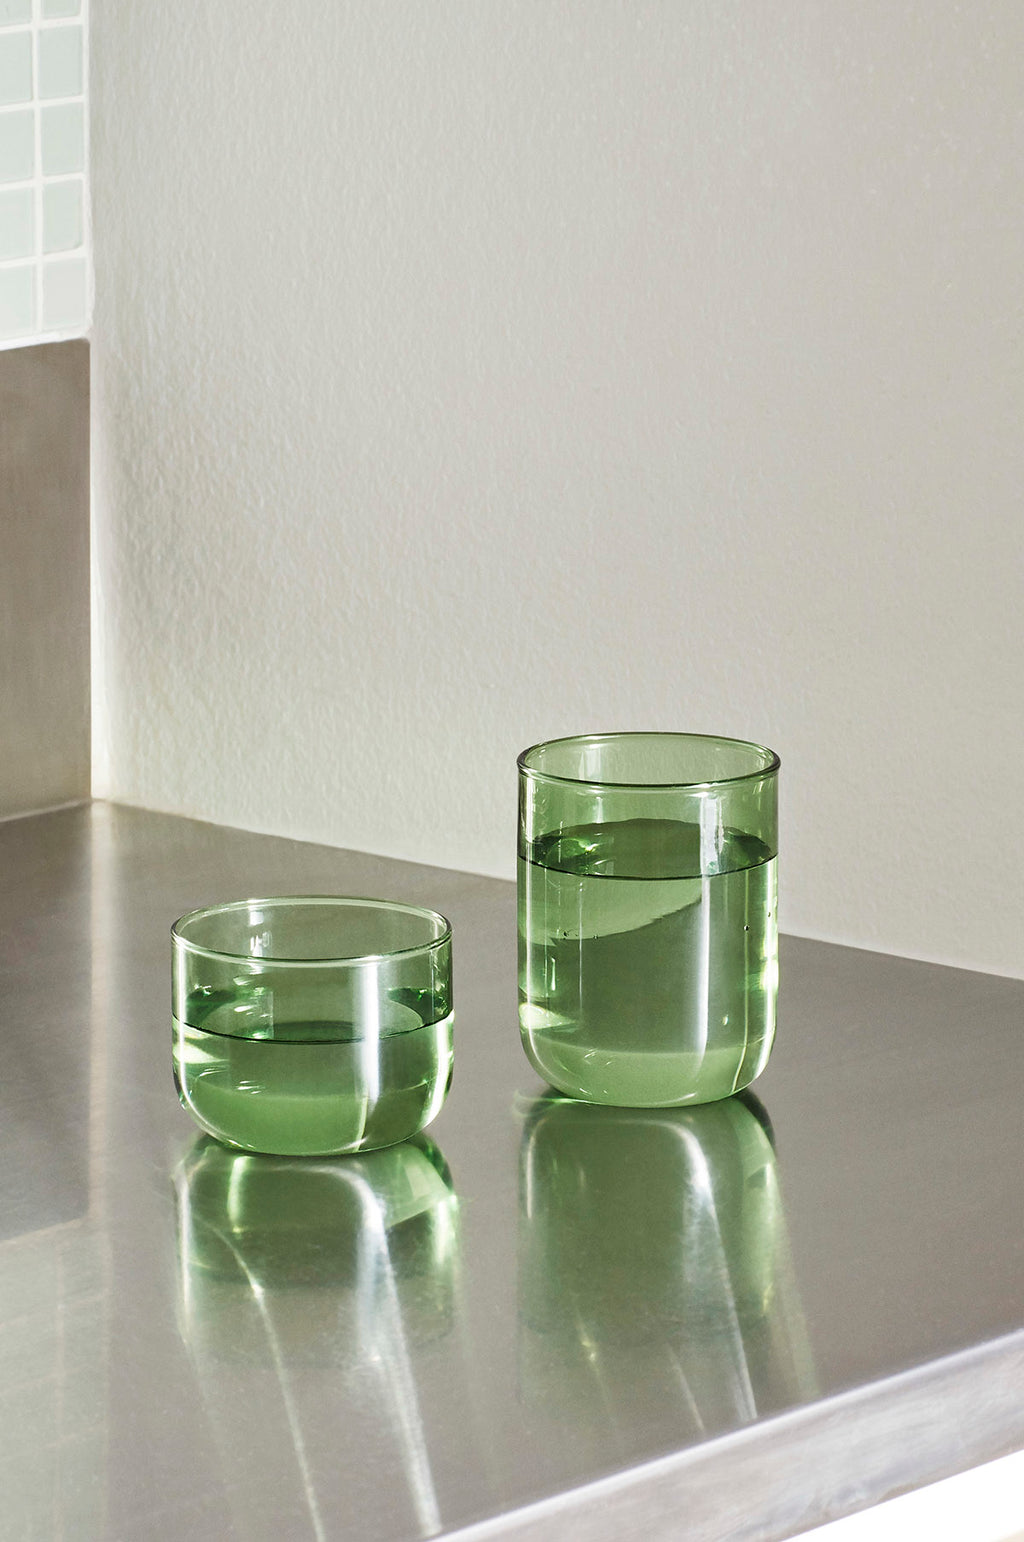 Set of 2 Tint Tumblers in Green